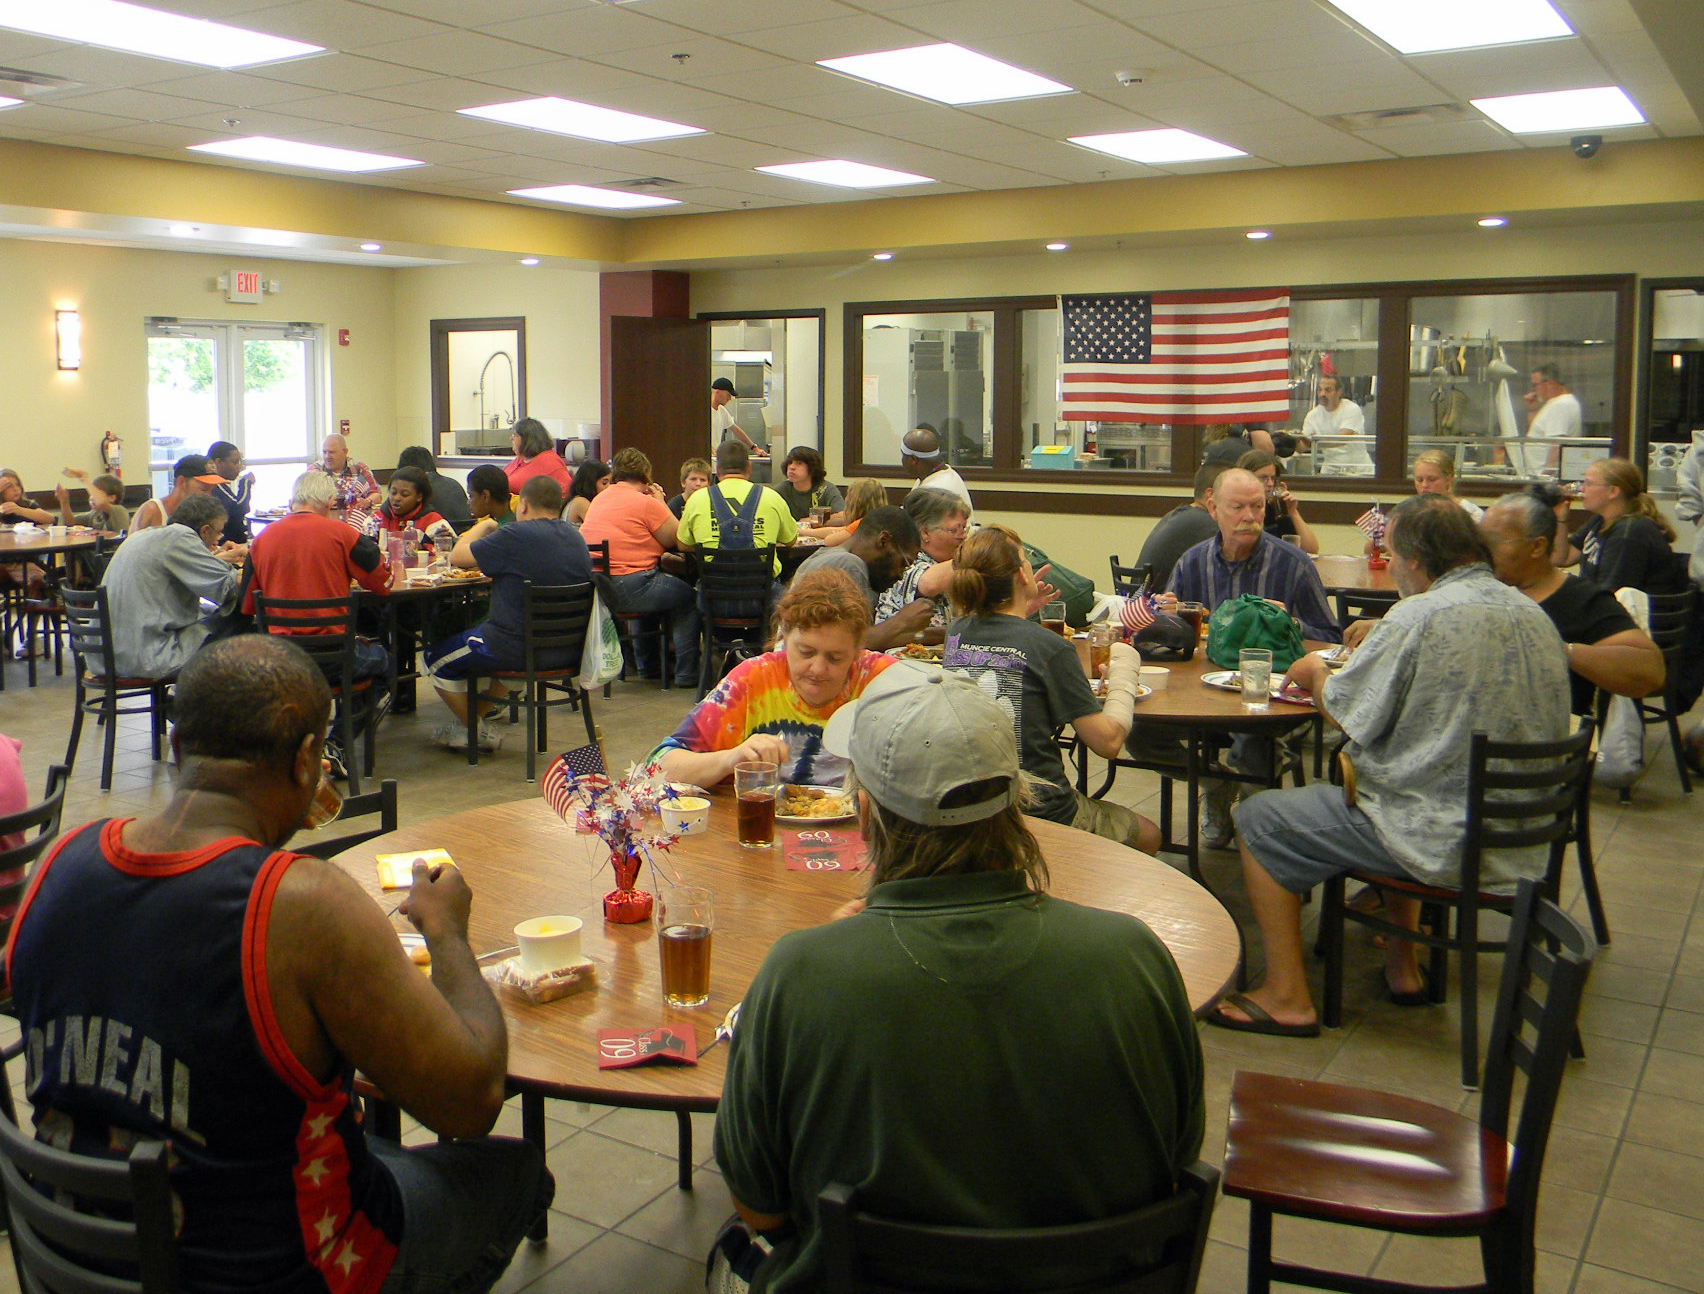 Free Community Lunch in Mission dining room